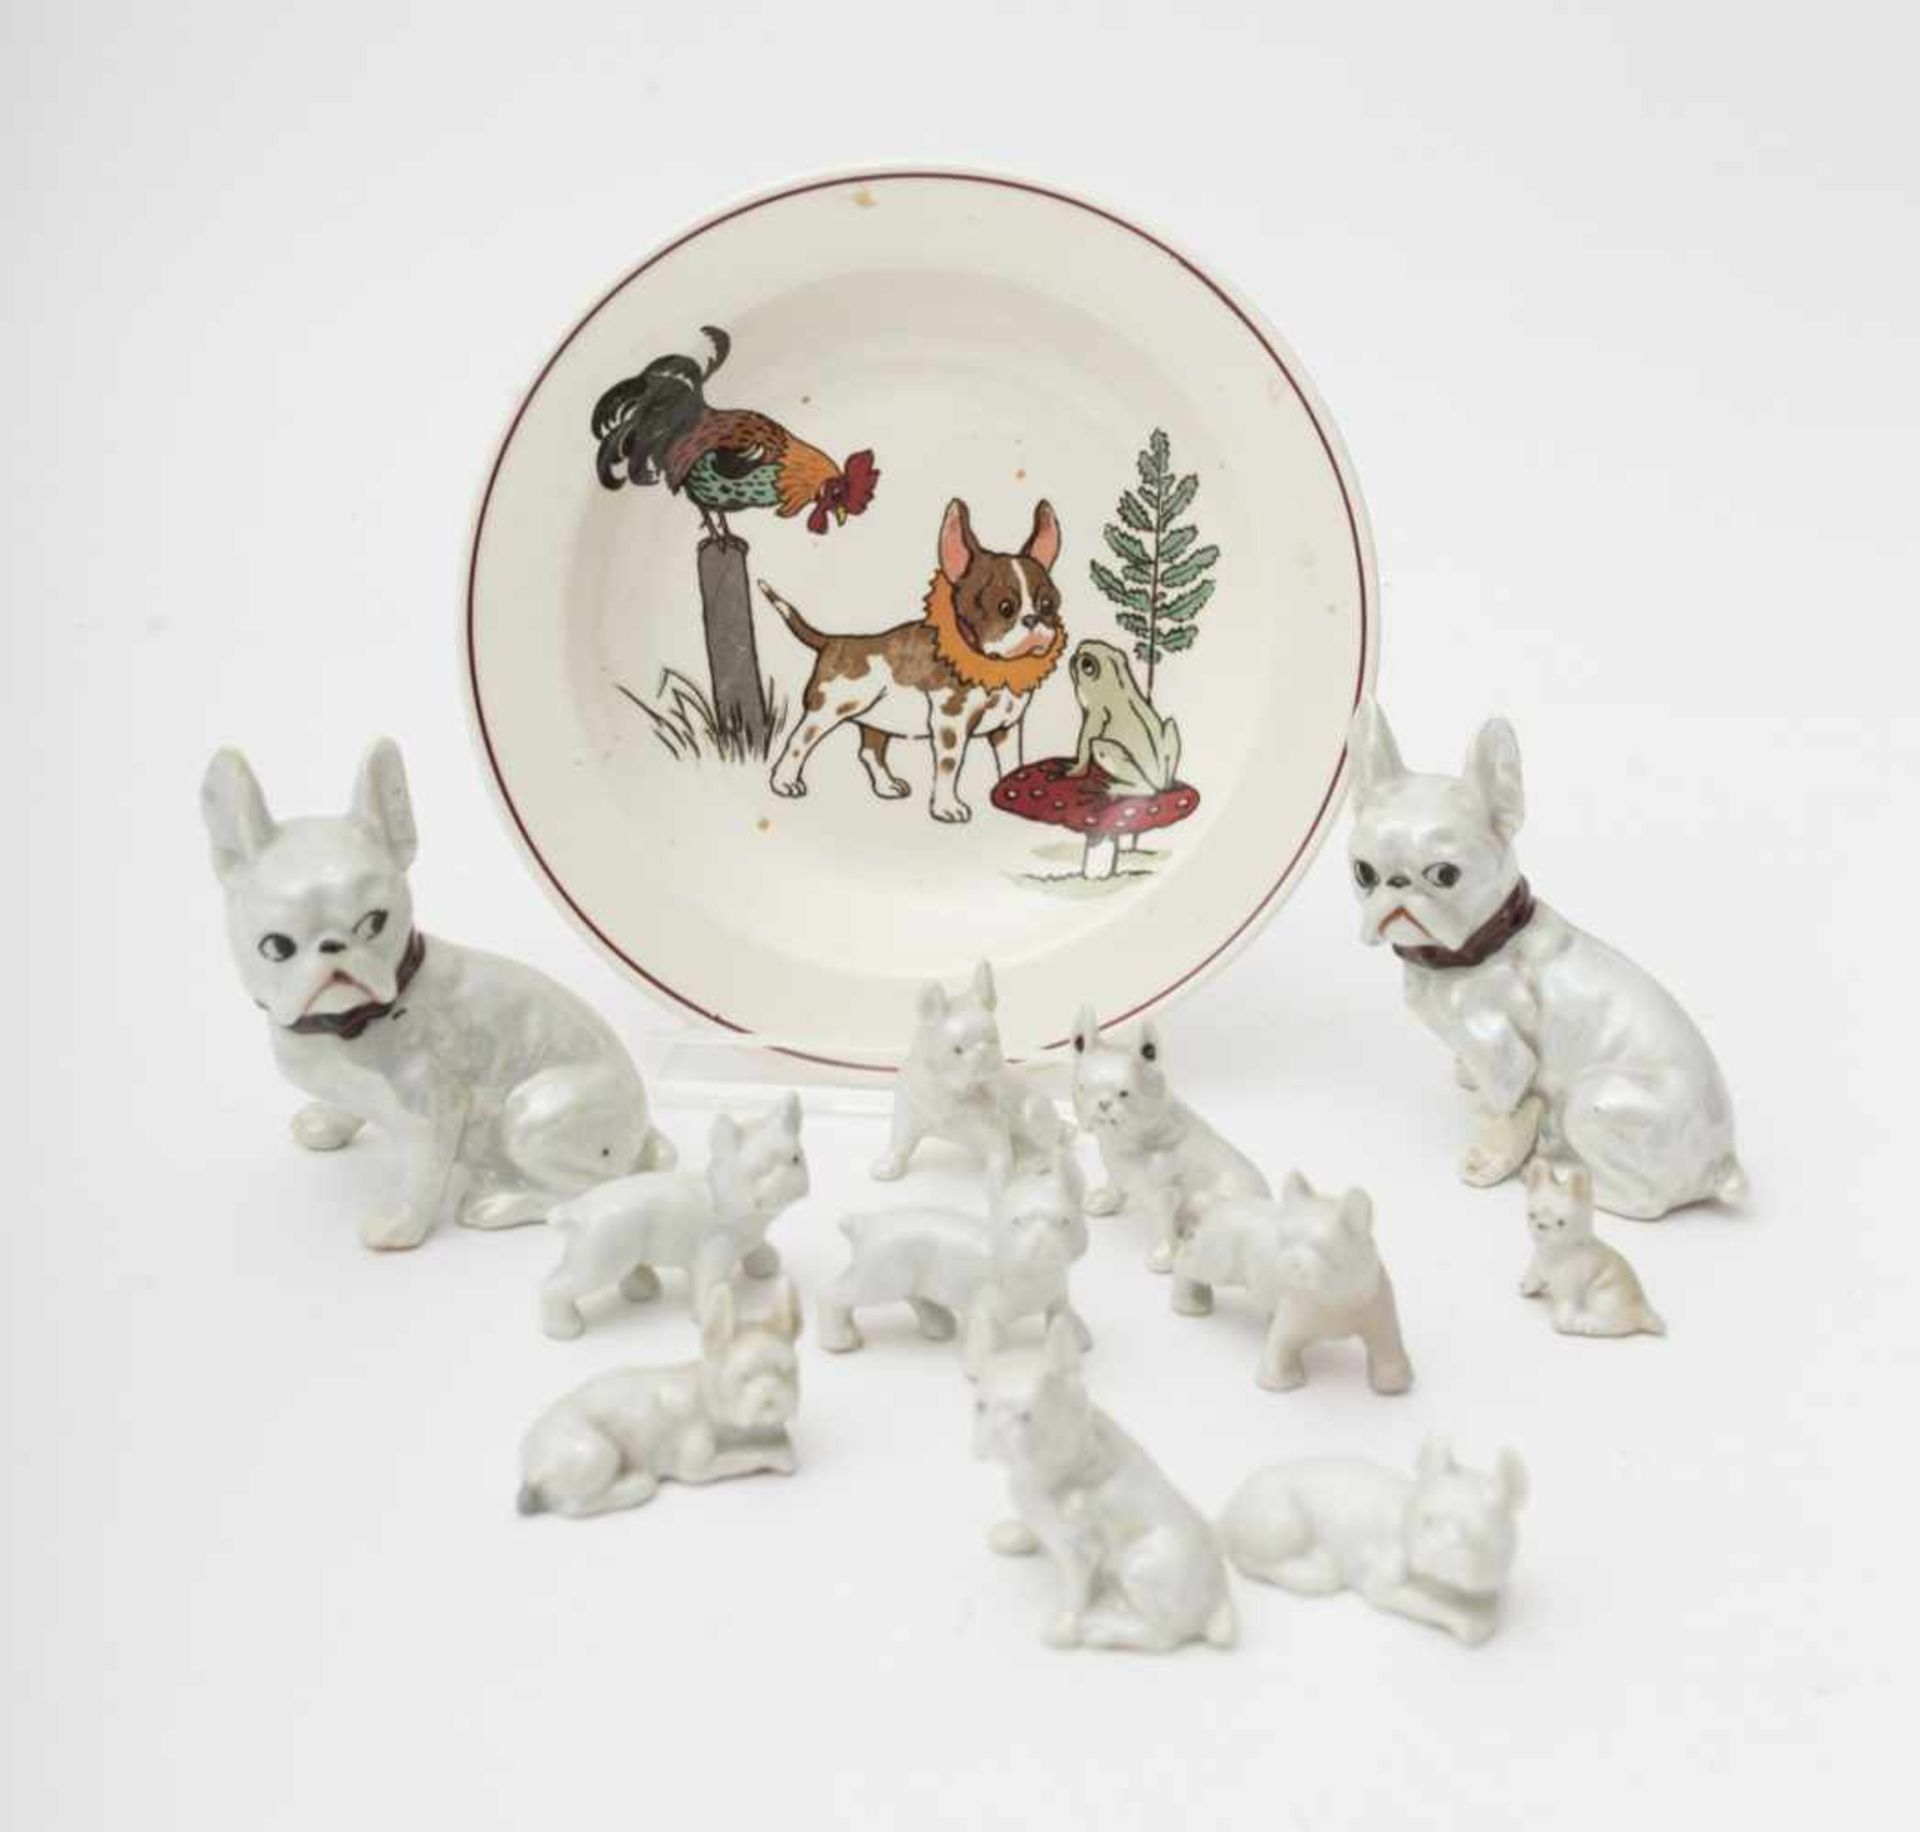 Objects of vertu Such as bulldogs – earthenware plates.